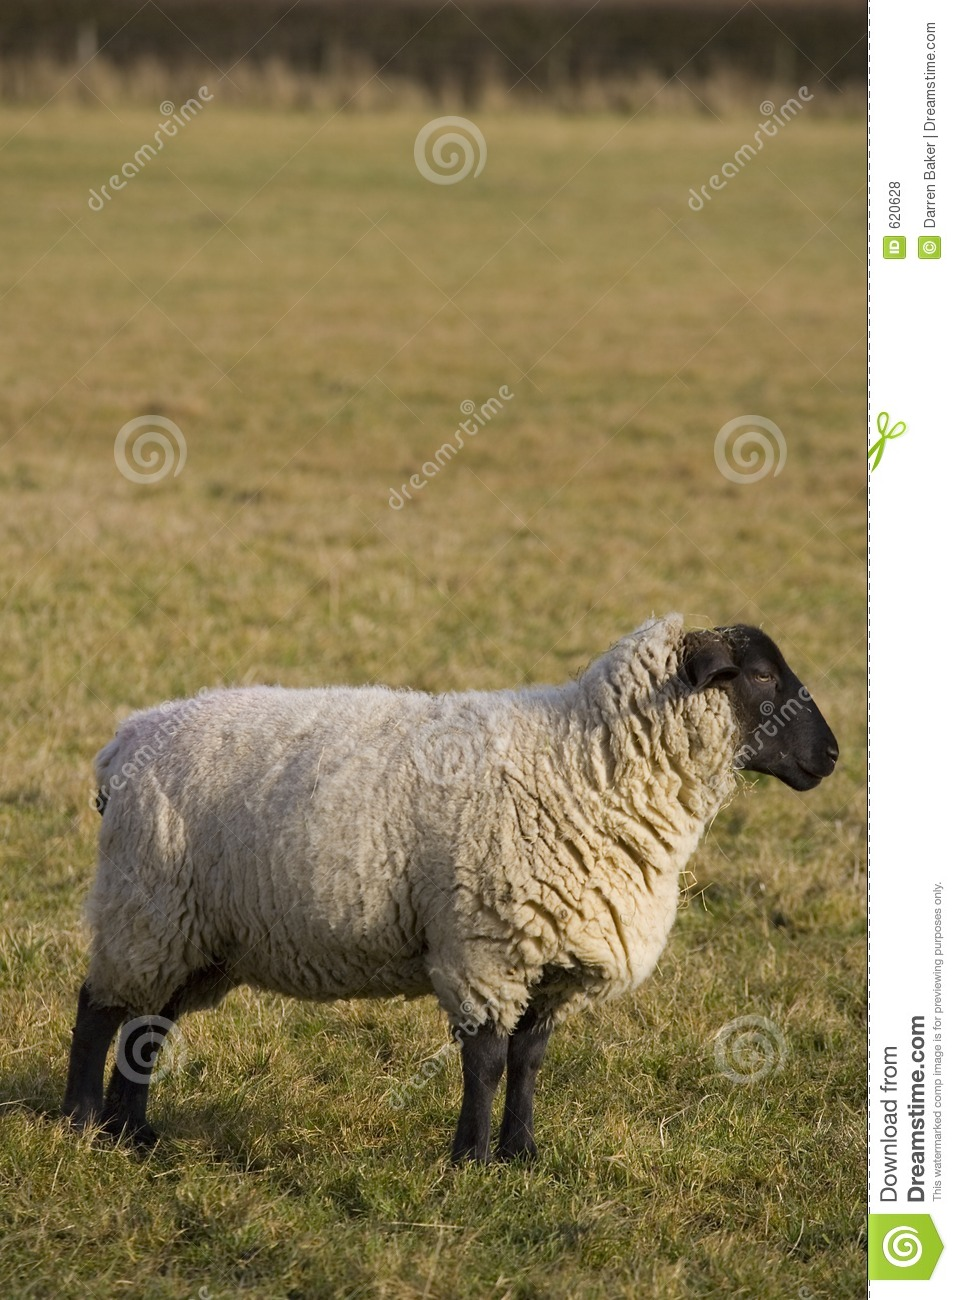 Black Faced Sheep In Profile Stock Photo - Image of mutton ...